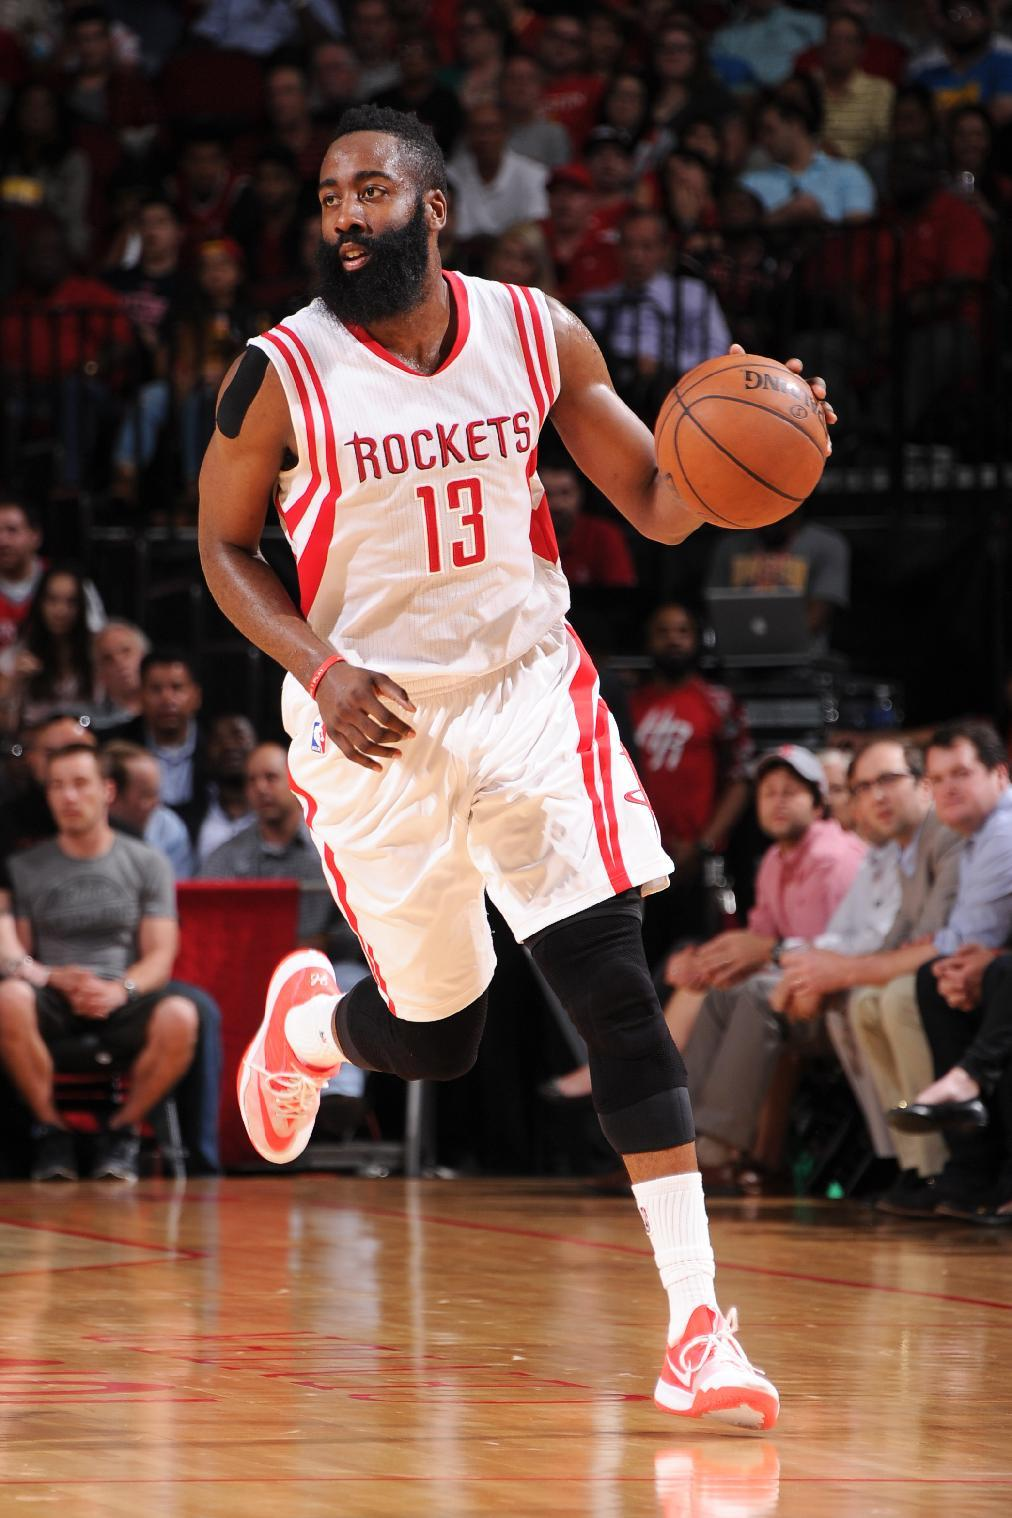 HOUSTON, TX - APRIL 15: James Harden #13 of the Houston Rockets handles the ball against the Utah Jazz on April 15, 2015 at the Toyota Center in Houston, Texas. (Photo by Bill Baptist/NBAE via Getty Images)